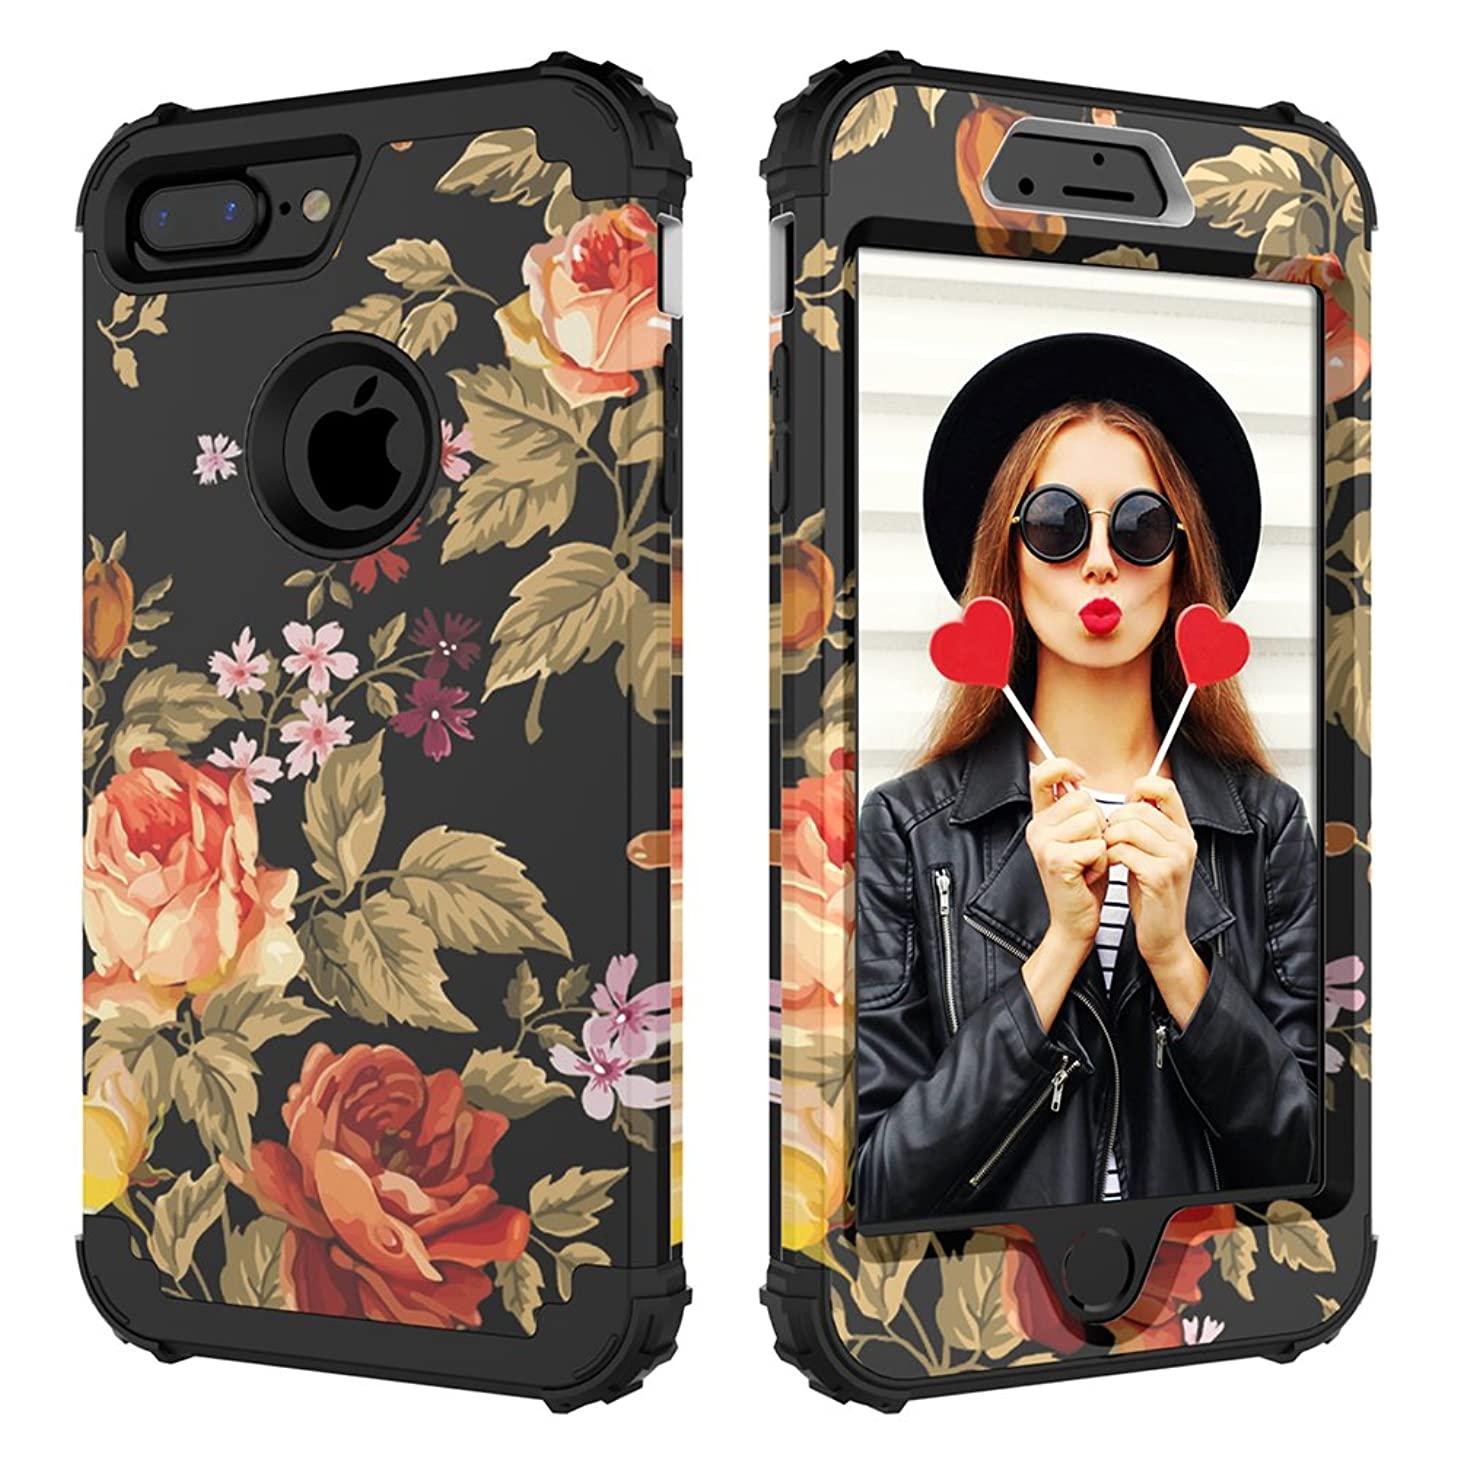 Digital Hutty 3 in 1 Shockproof Heavy Duty Full-Body Protective Cover for Apple iPhone 7 Plus/iPhone 8 Plus, Flower